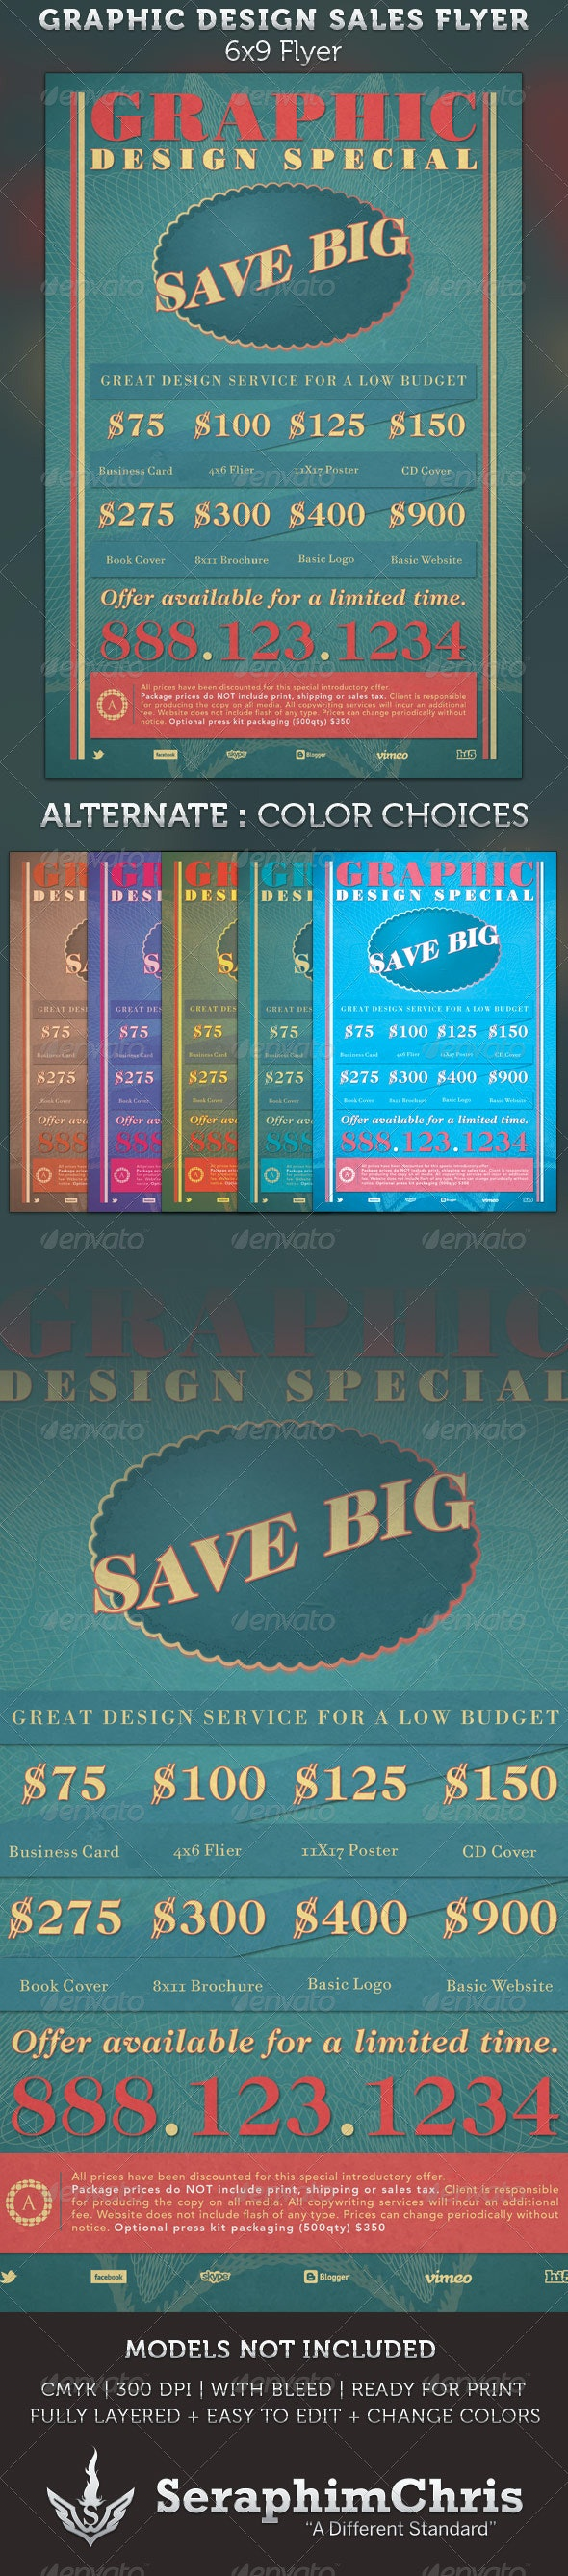 Graphic Design Retro Style Sales Flyer Template - Commerce Flyers